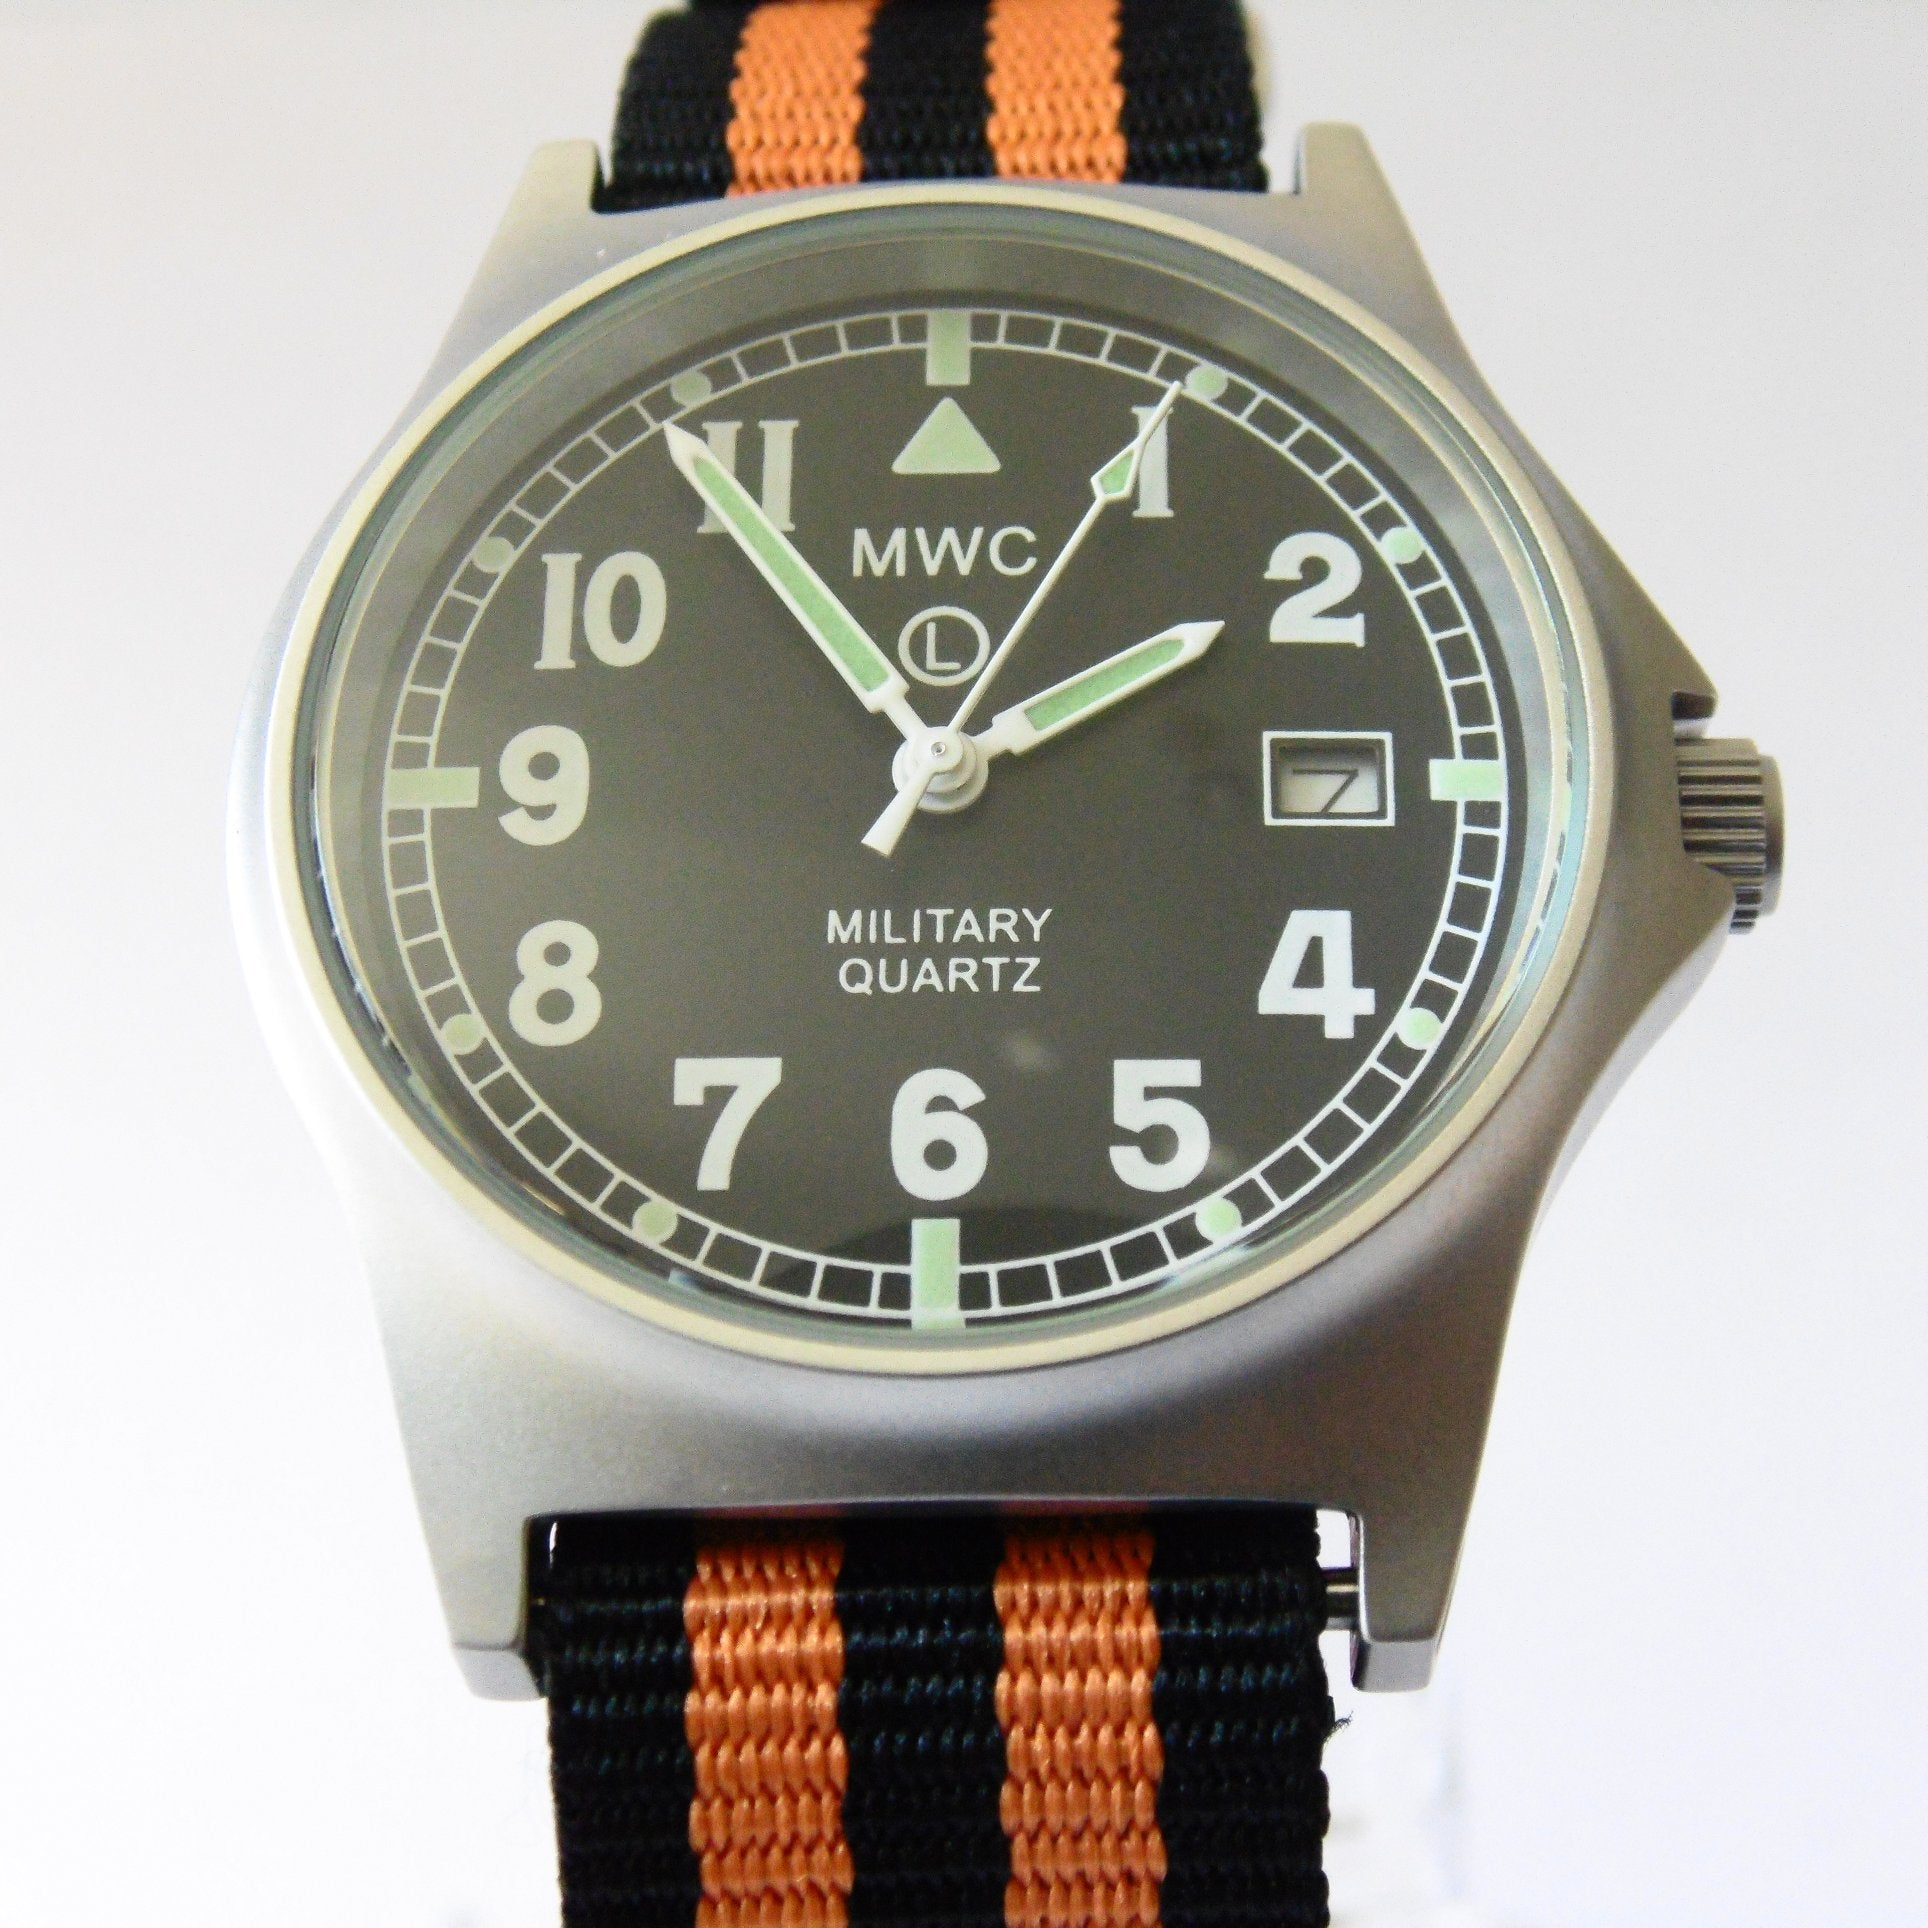 MWC G10 LM Military Watch (Black and Orange Nato Strap) - Watchfinder General - UK suppliers of Russian Vostok Parnis Watches MWC G10  - 1